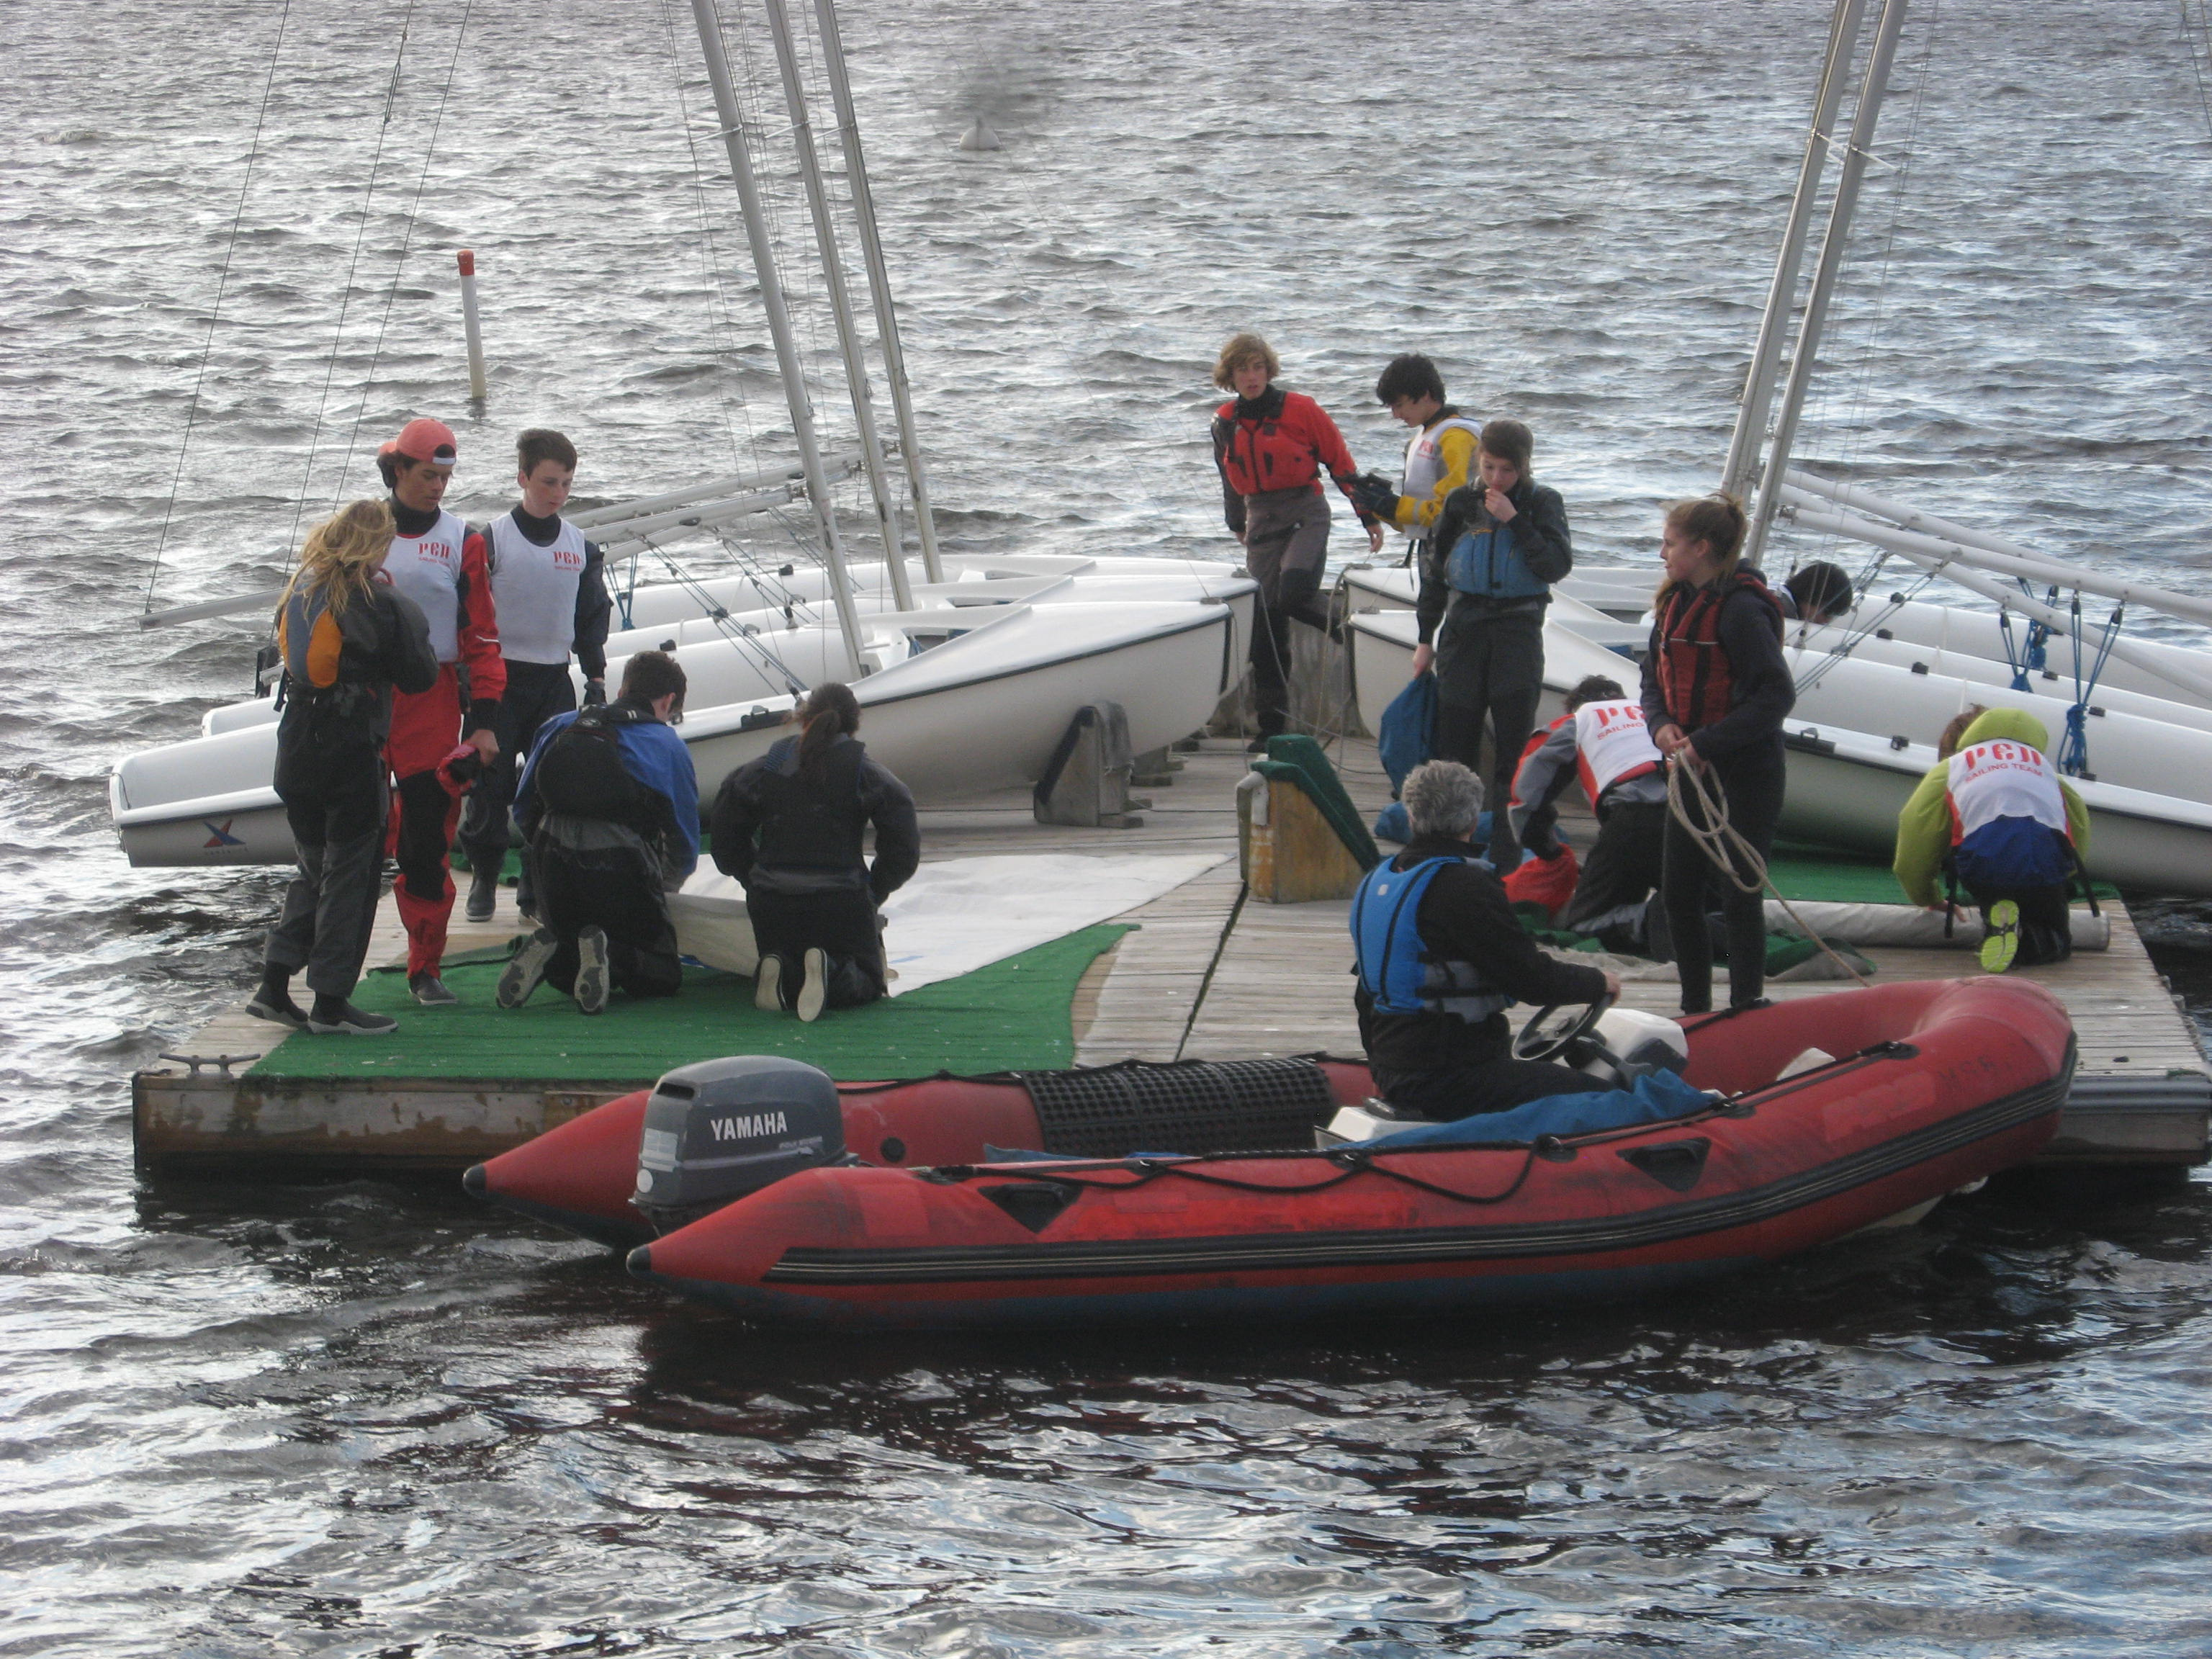 Coaching the next generation of young sailors is one of the most rewarding activities I do today